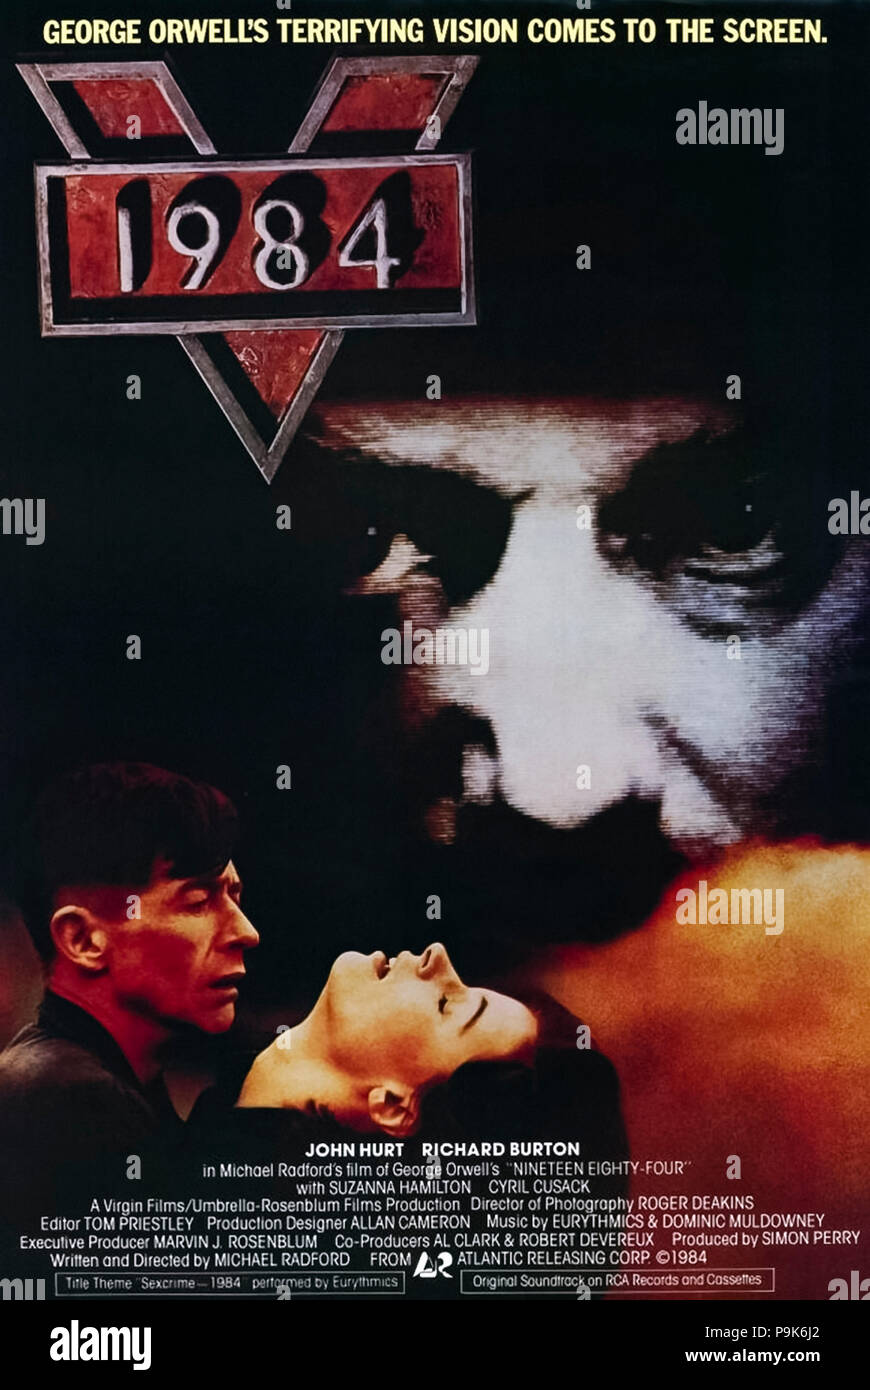 1984 (1984)( Nineteen Eighty-Four) directed by Michael Radford and starring John Hurt, Richard Burton, Suzanna Hamilton and Cyril Cusack. George Orwell's prescient dystopian novel gets a worthy big screen adaptation. - Stock Image